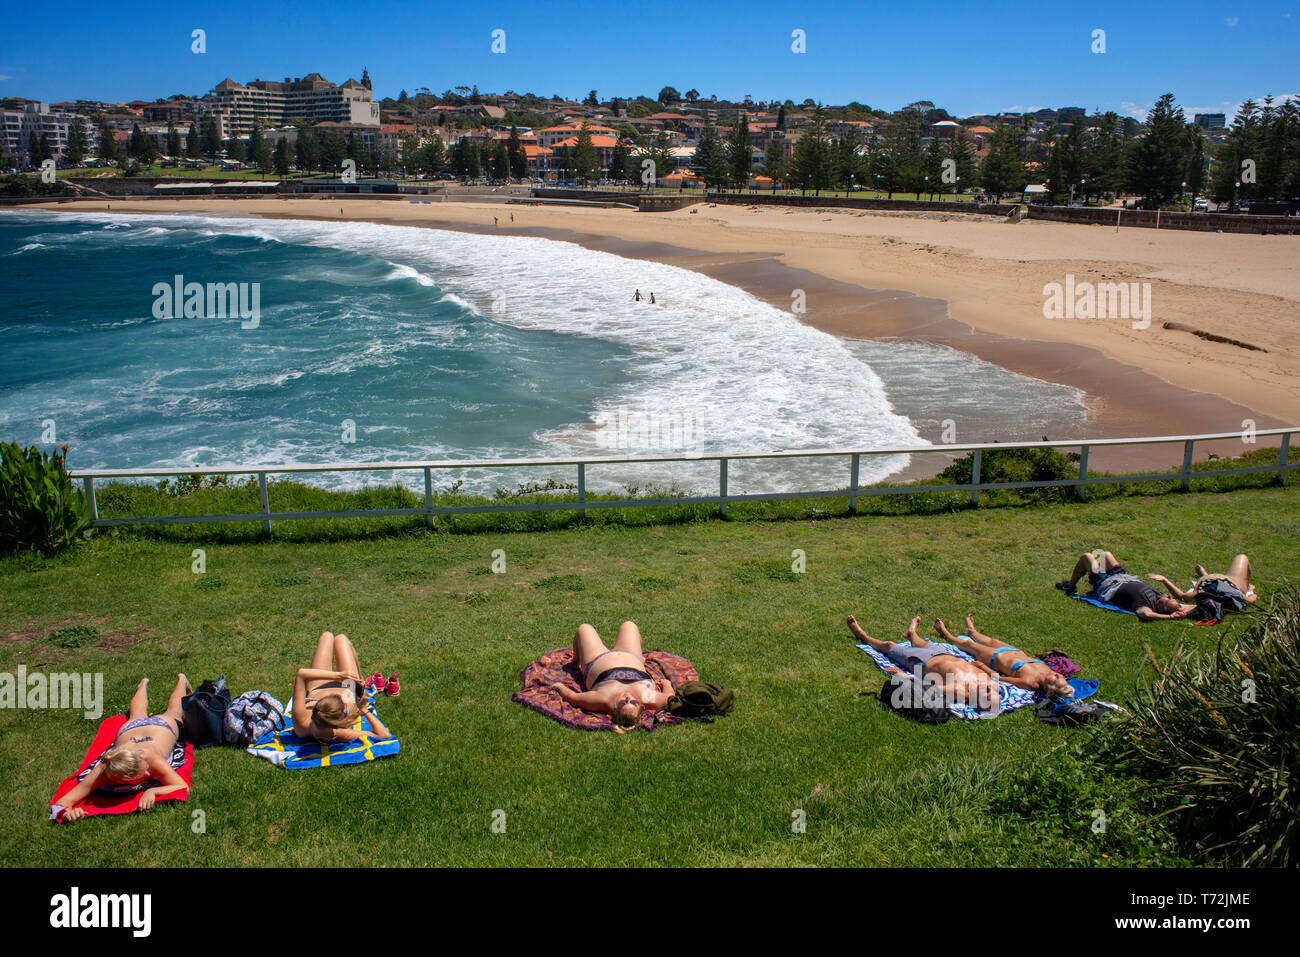 The Bondi beach to Coogee walk is a coastal walk in Sydney New South Wales, Australia. Sunbath in Coogee beach Dolphins Point and Giles Baths - Stock Image